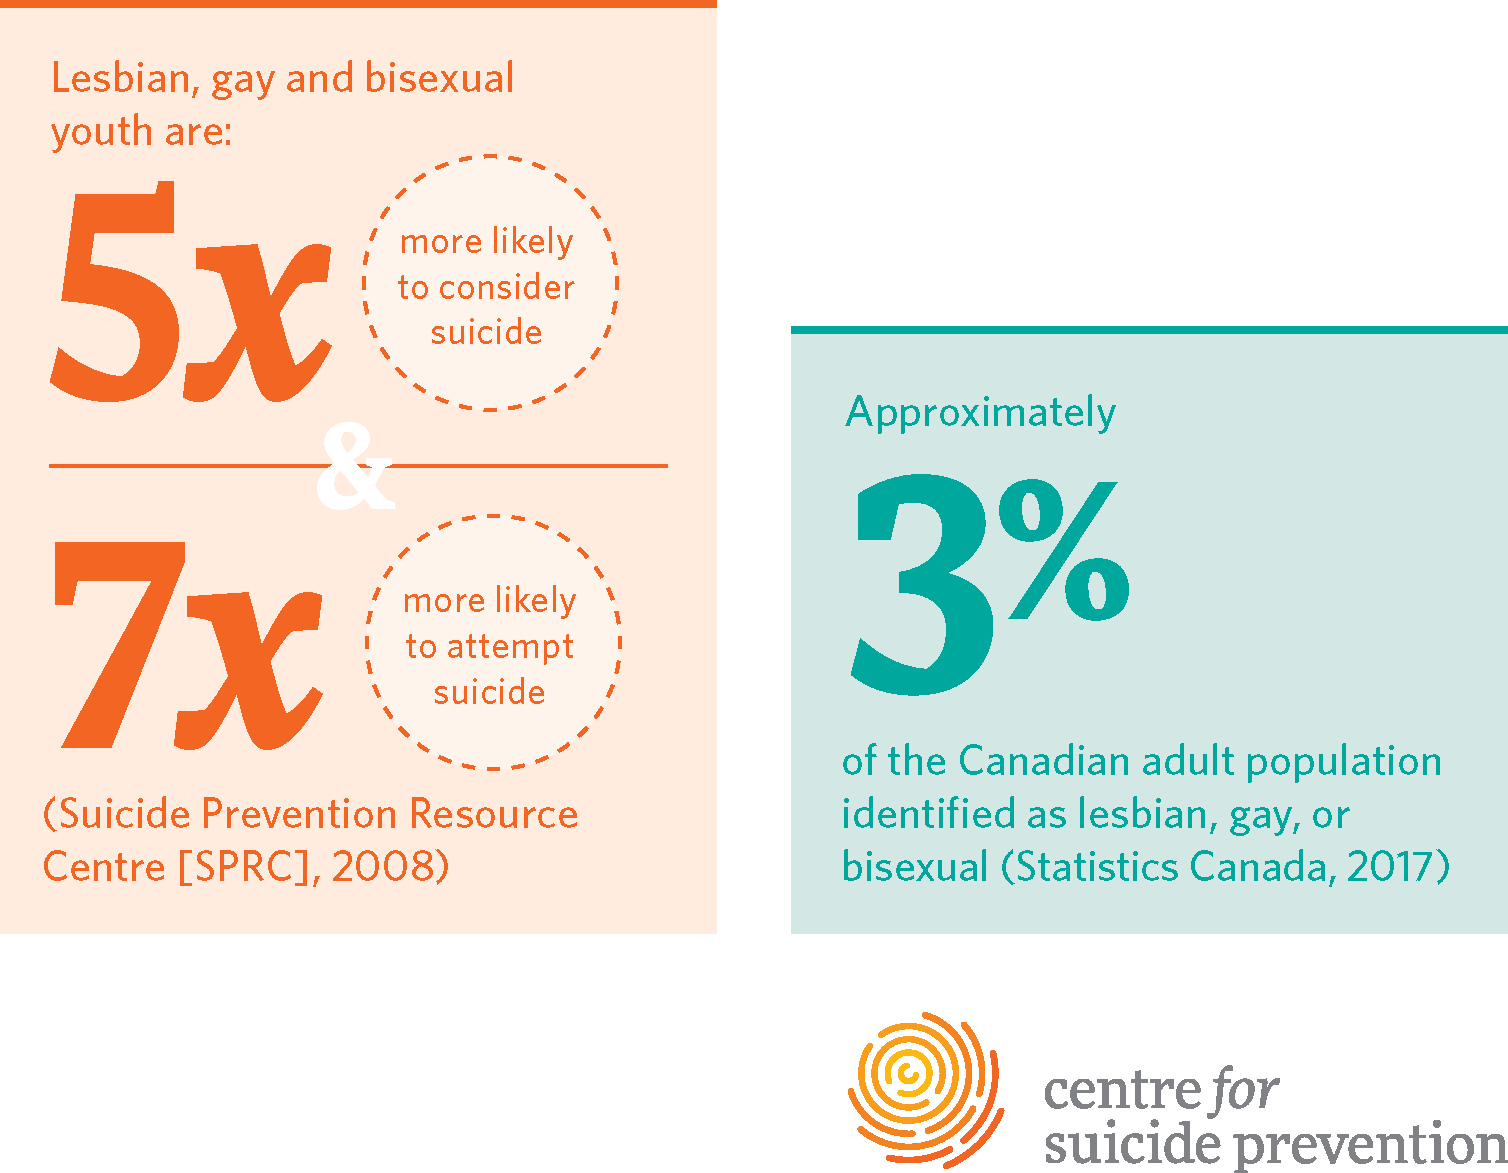 Approximately 3% of the Canadian adult population identified as lesbian, gay, or bisexual (Statistics Canada, 2017) Lesbian, gay and bisexual youth are: 5 times more likely to consider suicide 7 times more likely to attempt suicide (Suicide Prevention Resource Centre [SPRC], 2008)